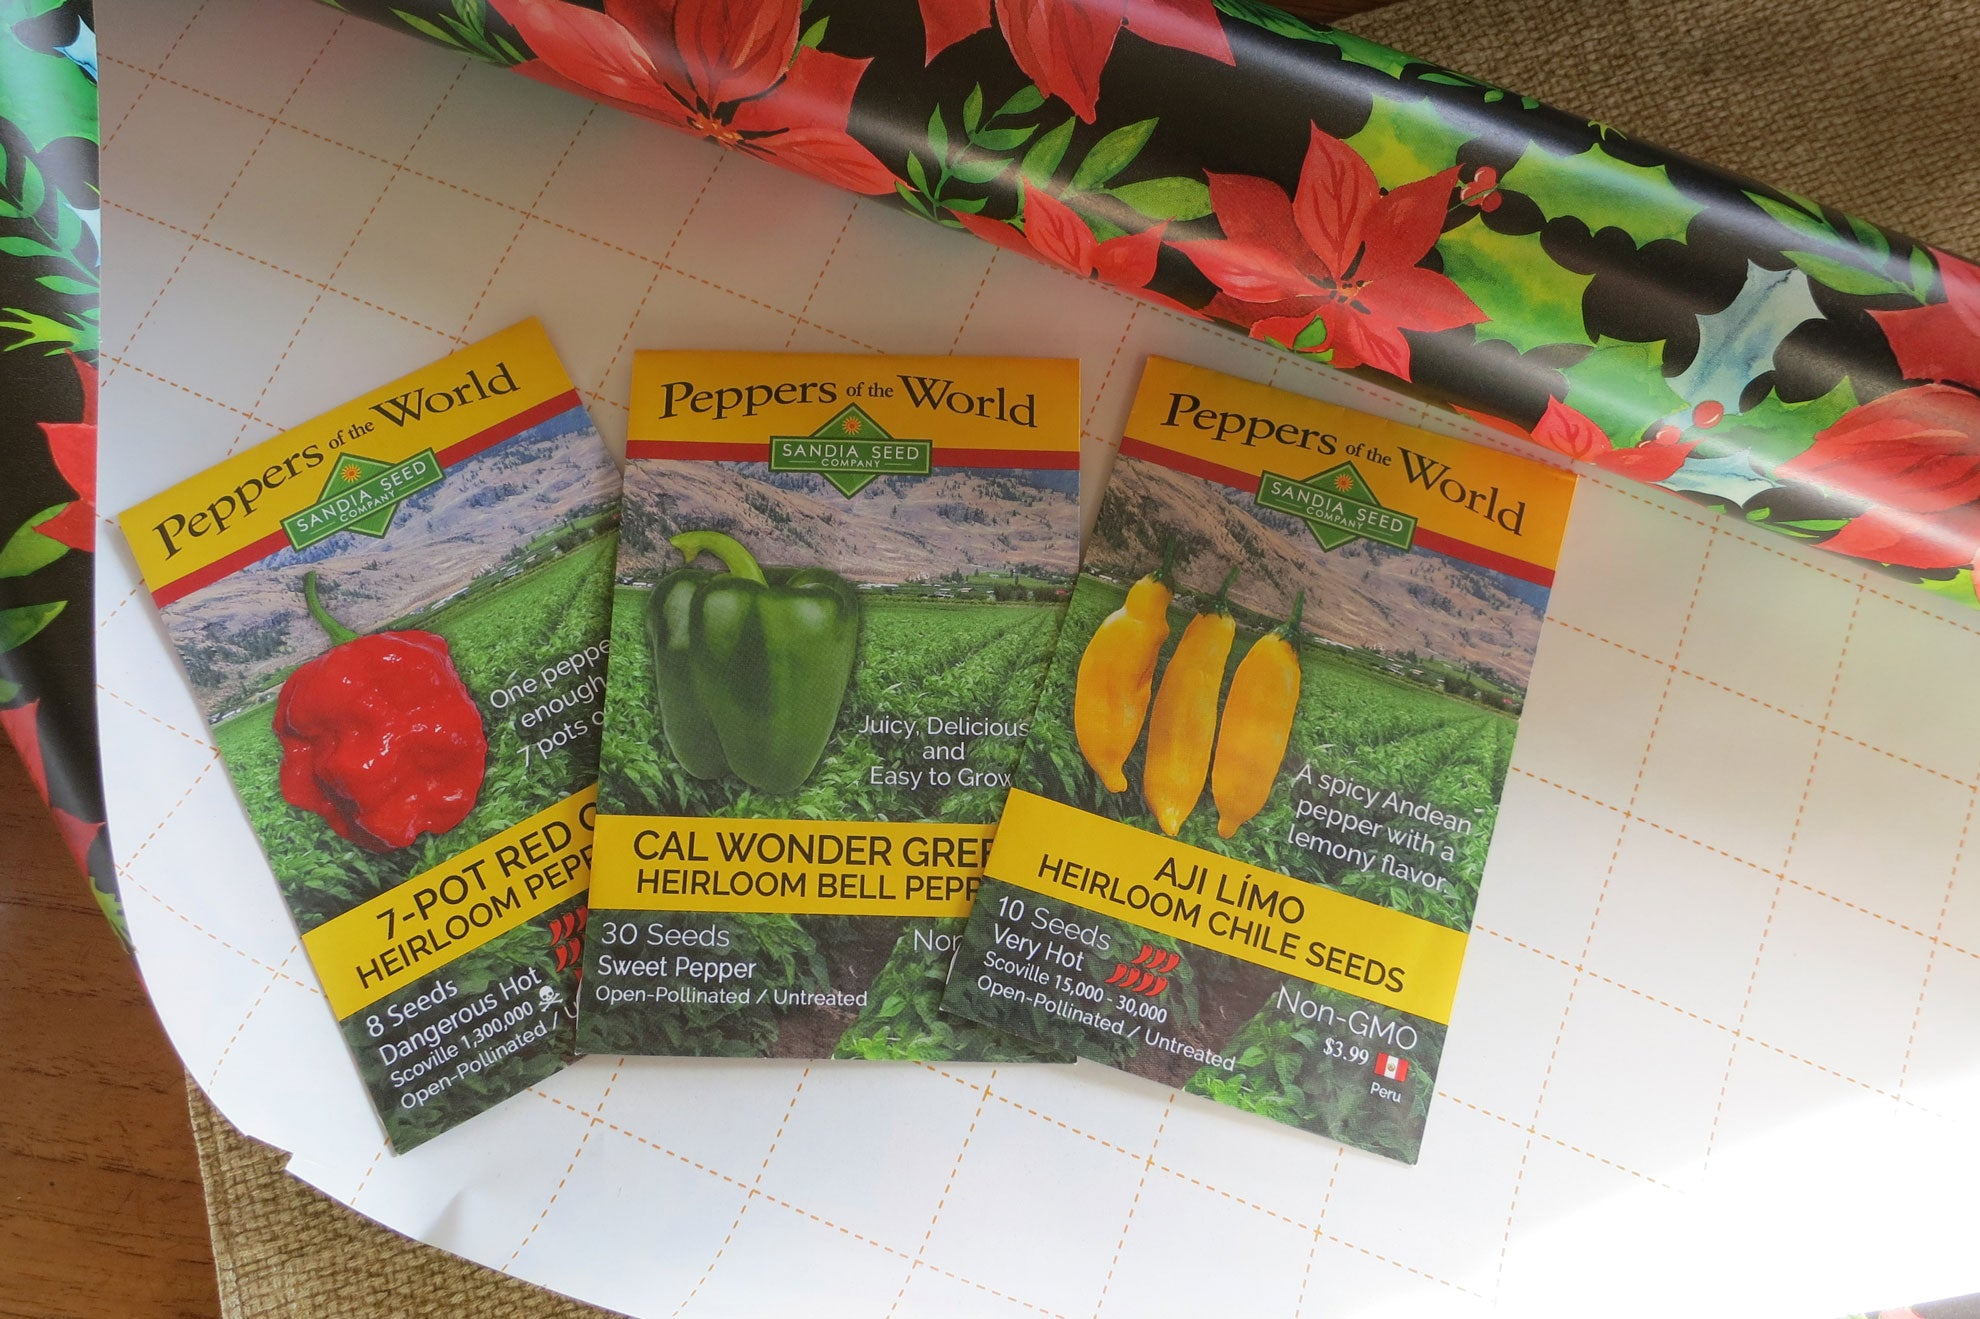 Gifts for Gardeners - Seeds from Sandia Seed make great Stocking Stuffers